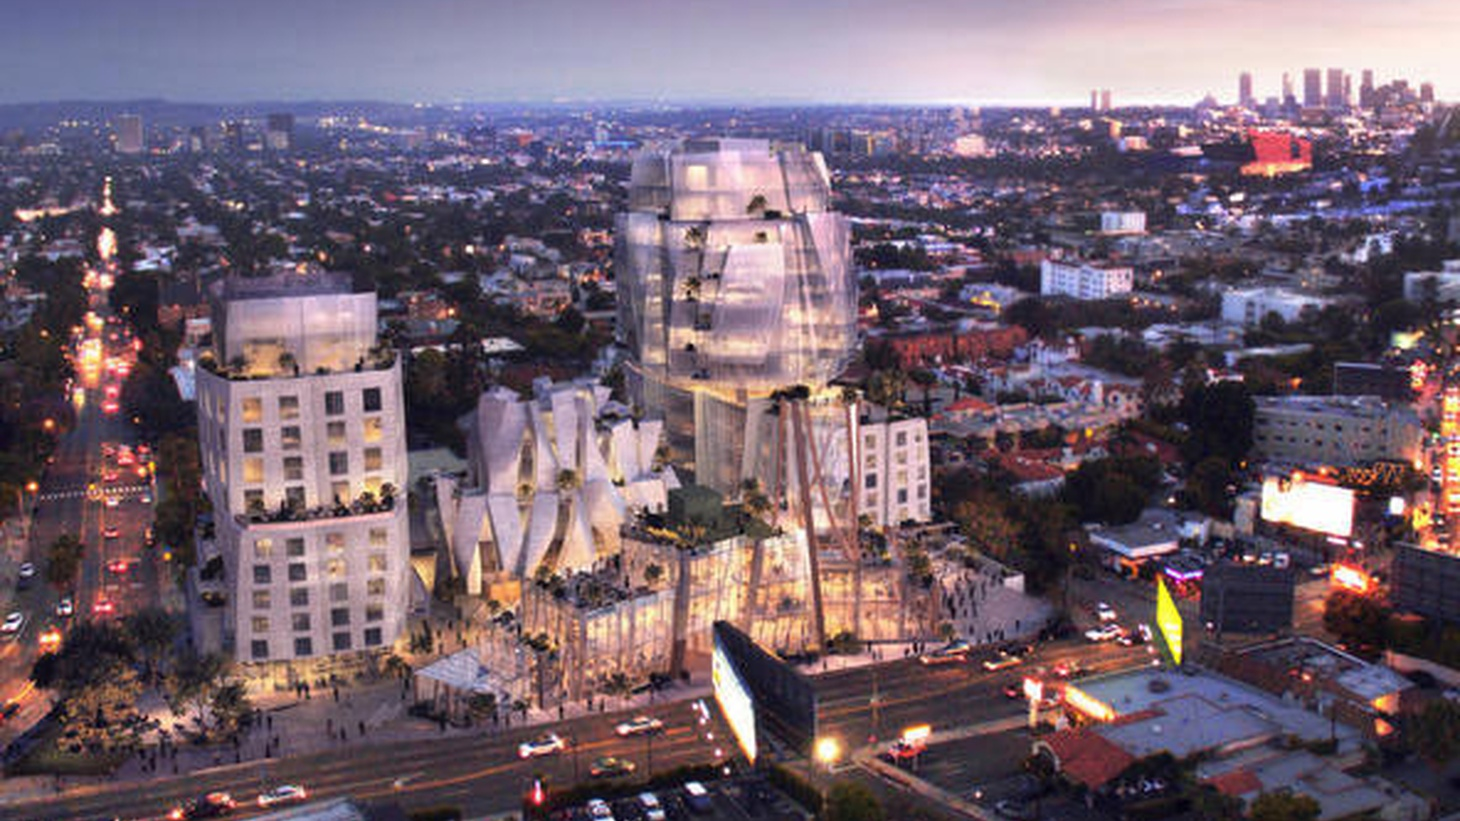 A Frank Gehry-designed project on Sunset Boulevard is moving forward, despite neighborhood opposition.